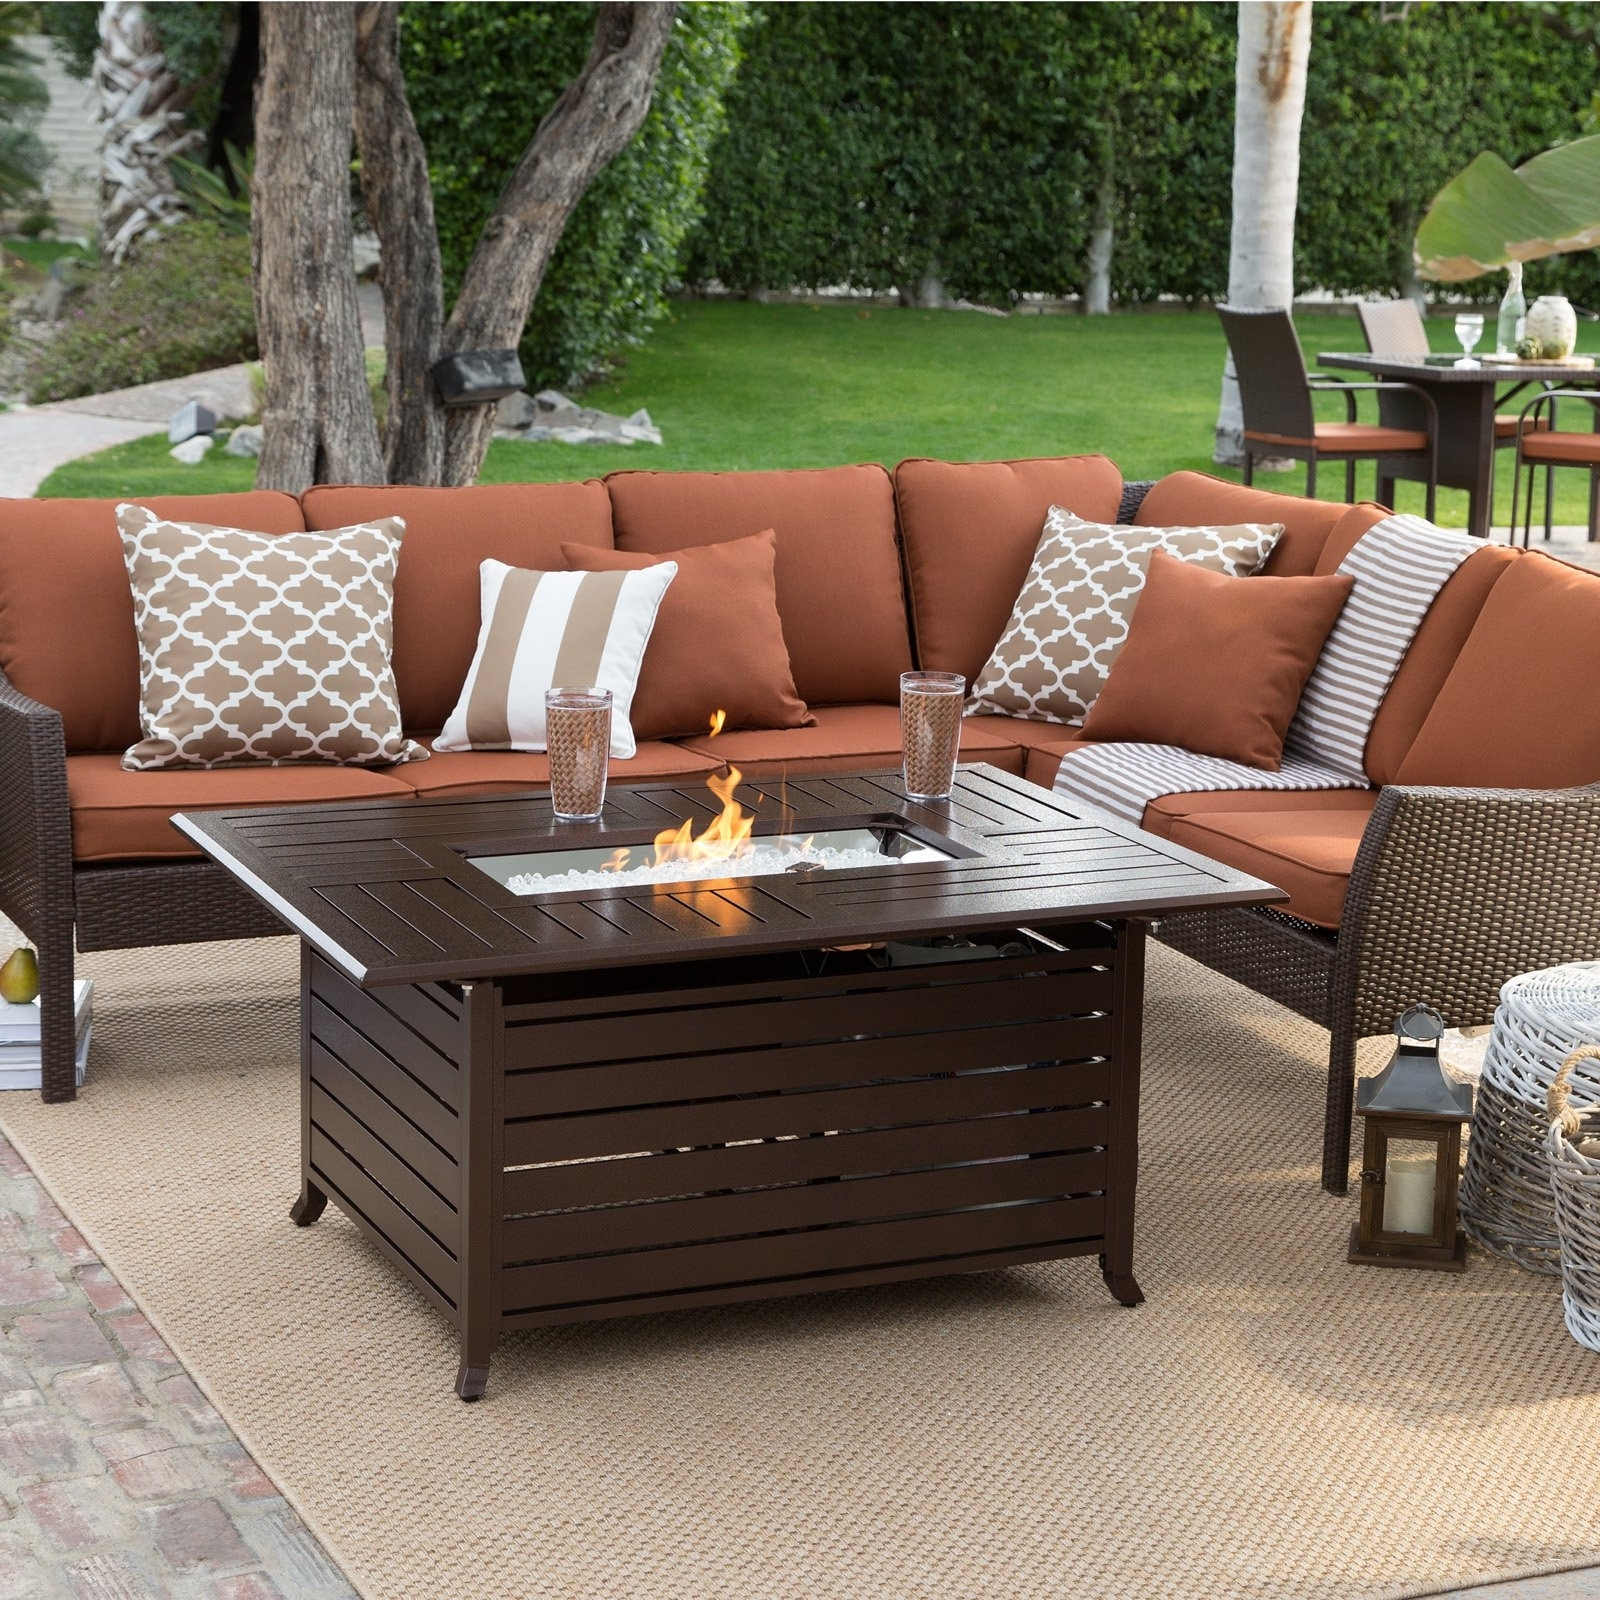 Patio Conversation Sets With Fire Pit Great Wicker Conversation Within Most Current Patio Furniture Conversation Sets With Fire Pit (View 15 of 20)